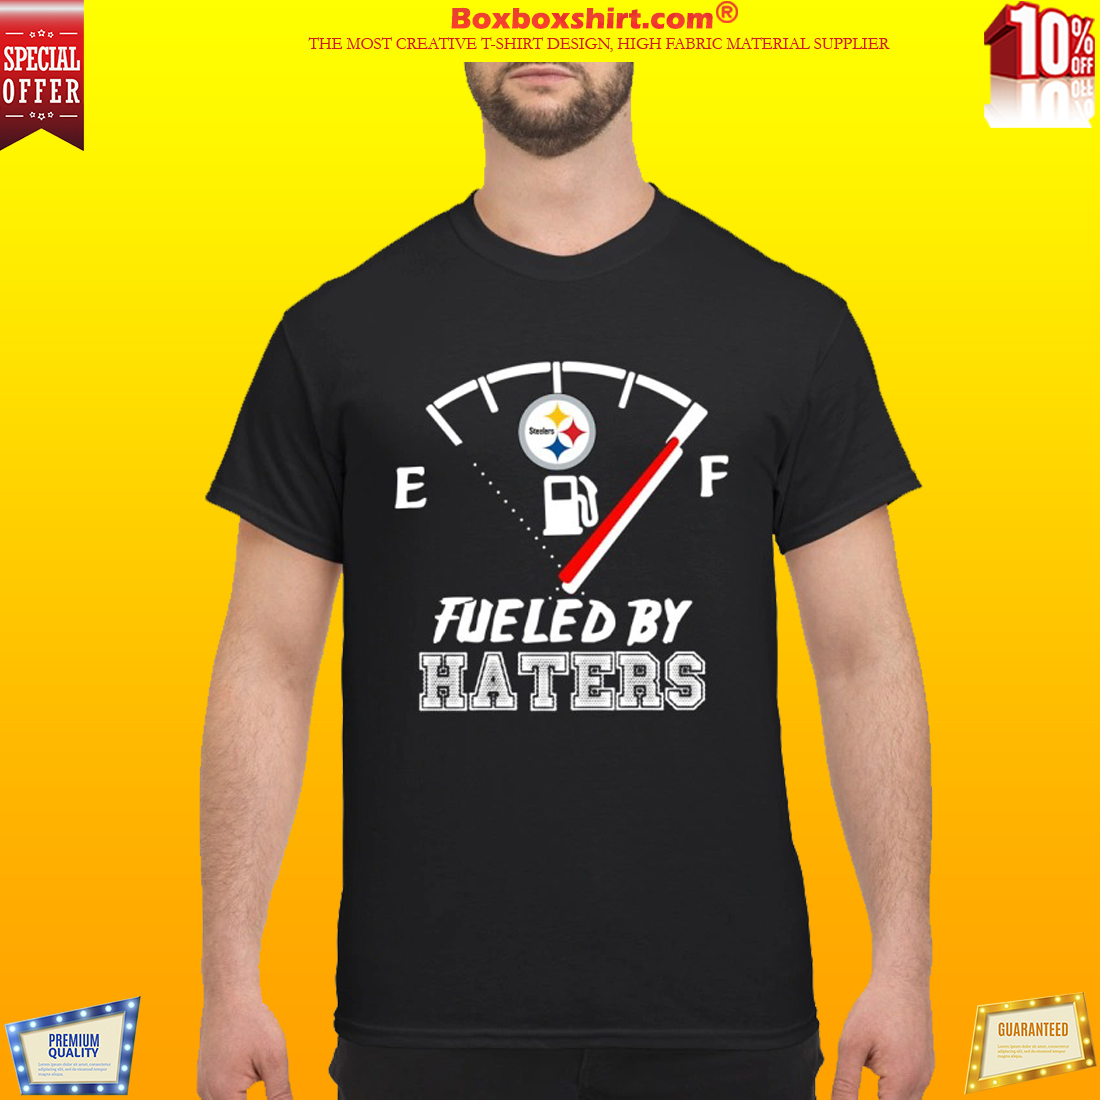 Pittsburgh Steelers fueled by haters shirt